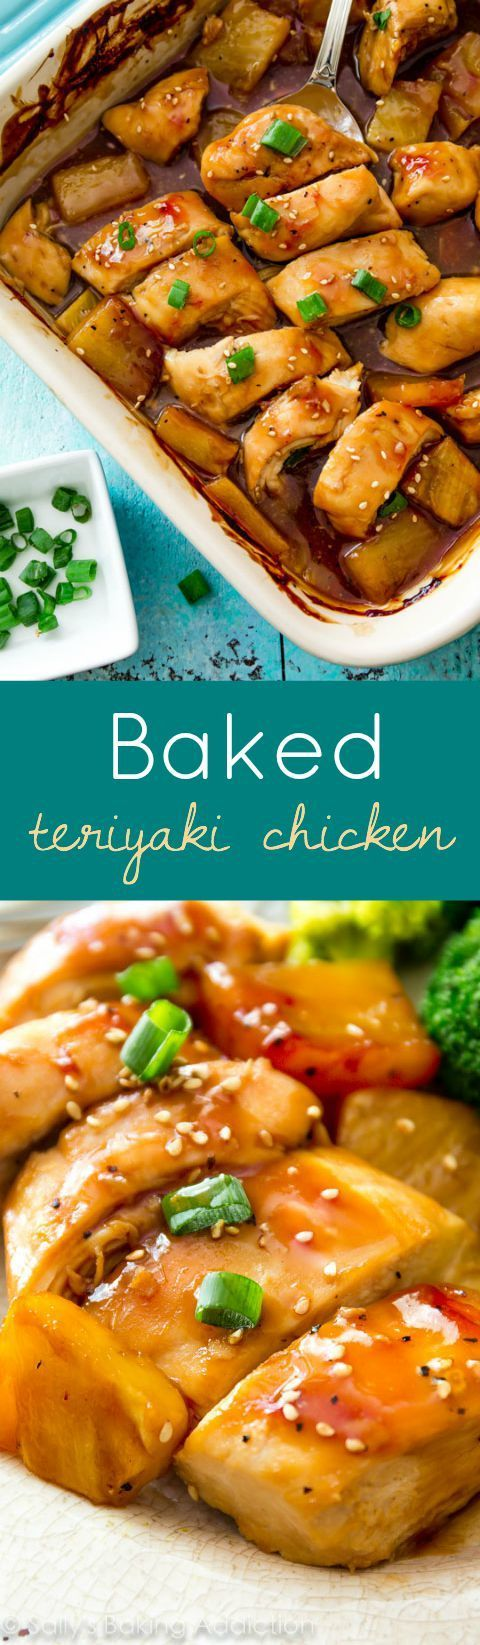 Simply pour this homemade teriyaki sauce over chicken and bake! Recipe by @sallybakeblog